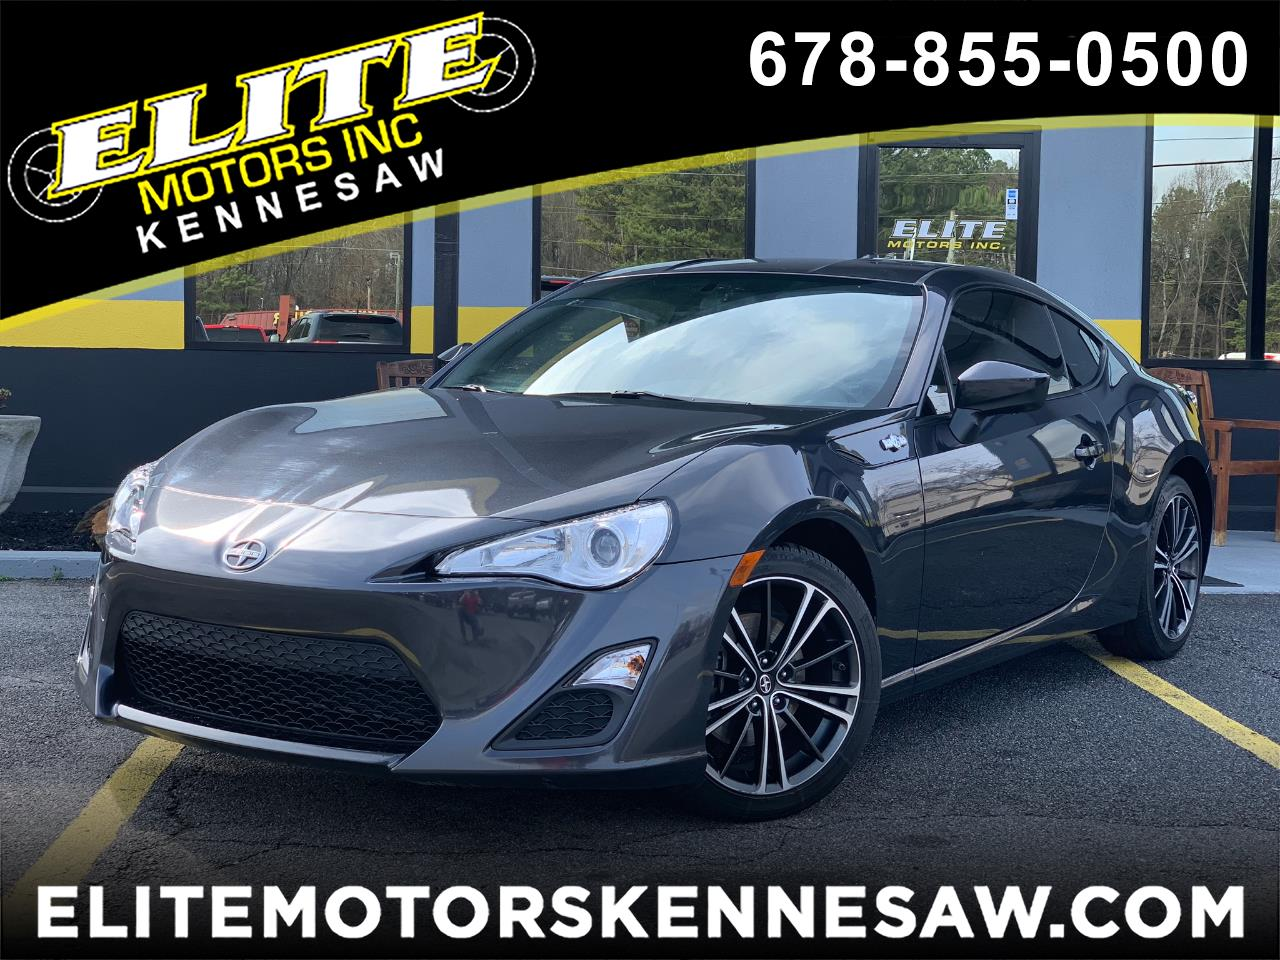 2016 Scion FR-S 2dr Cpe Man Release Series 2.0 (Natl)